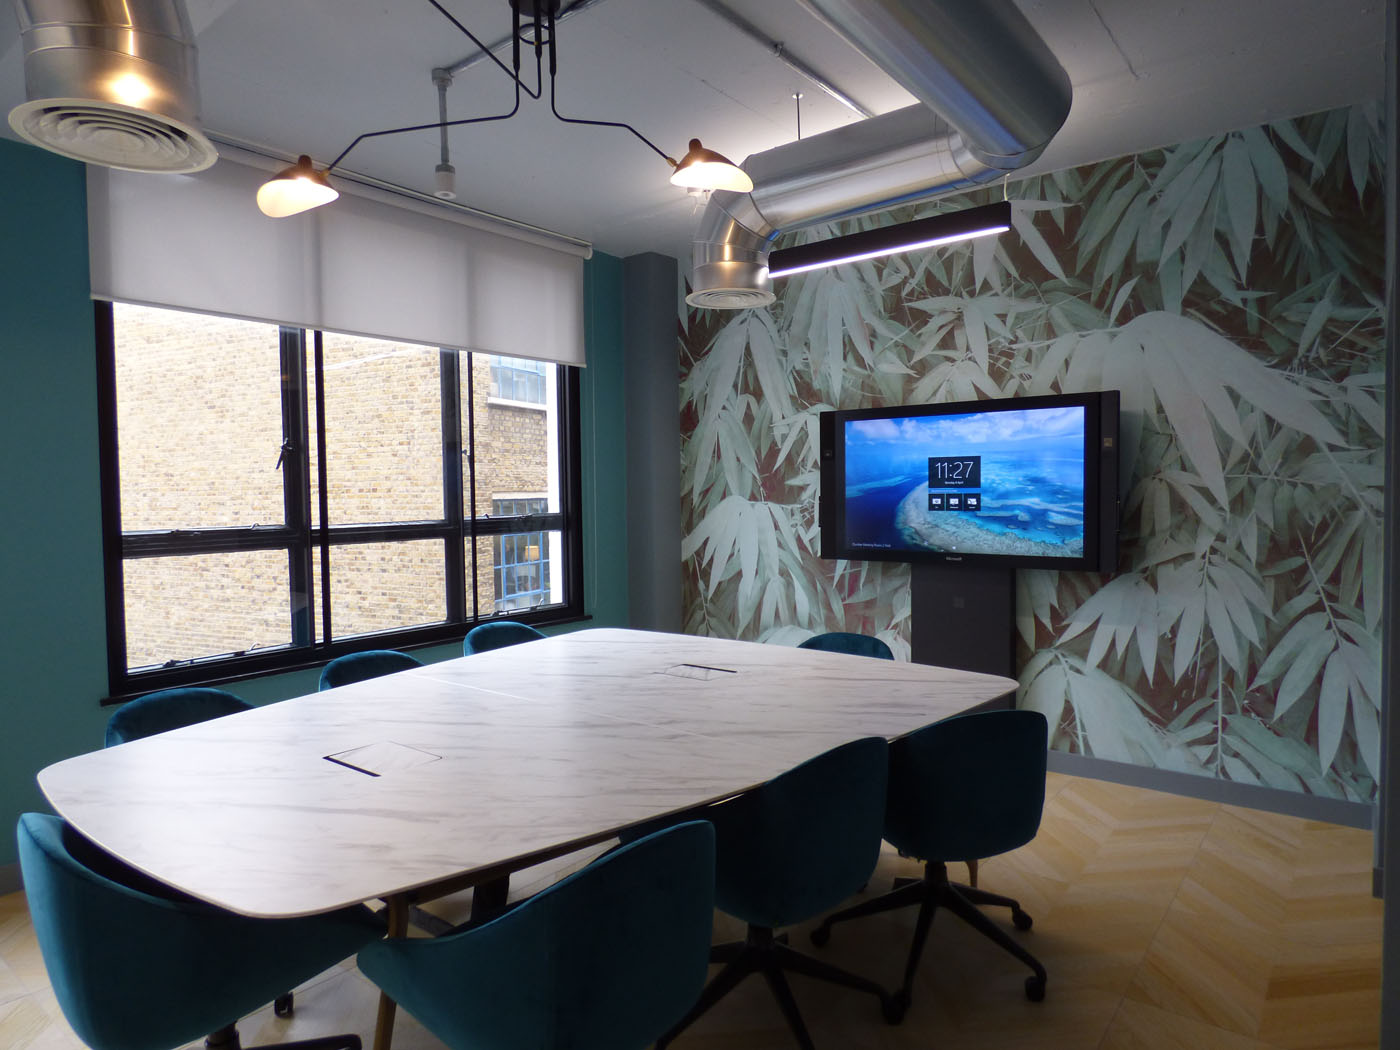 Workplace Design London - Home Group (9)